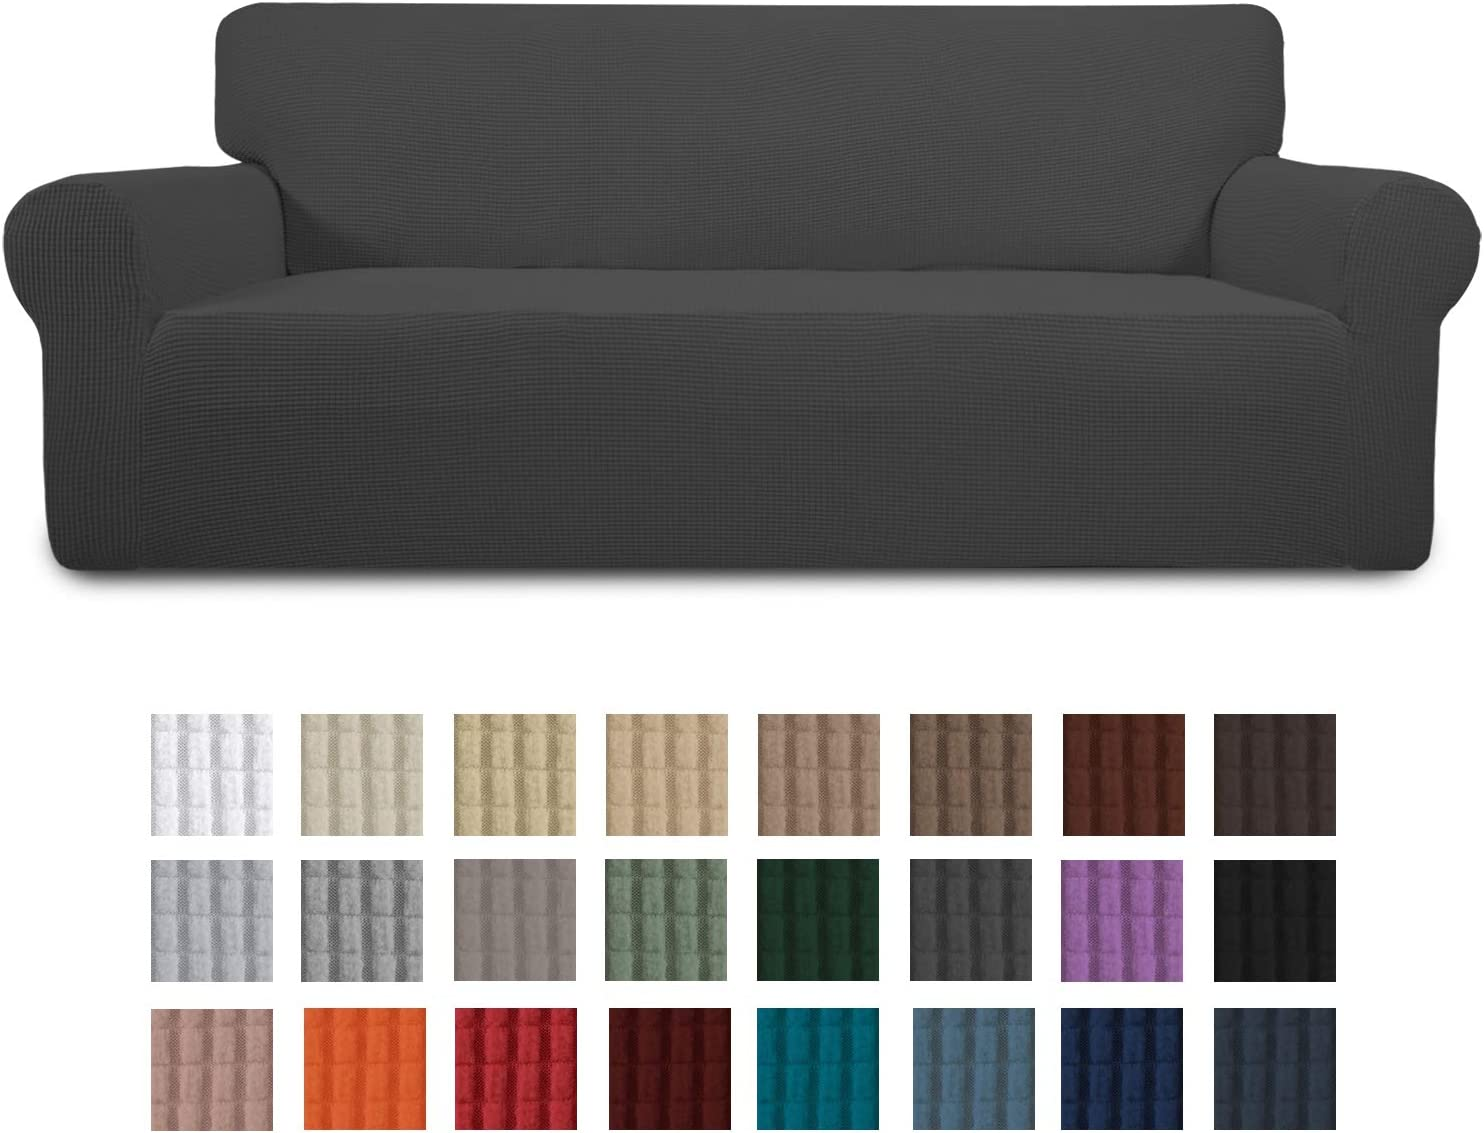 Easy-Going Stretch Sofa Slipcover 1-Piece Couch Sofa Cover Furniture Protector Soft with Elastic Bottom for Kids, Spandex Jacquard Fabric Small Checks(Sofa,Dark Gray): Kitchen & Dining